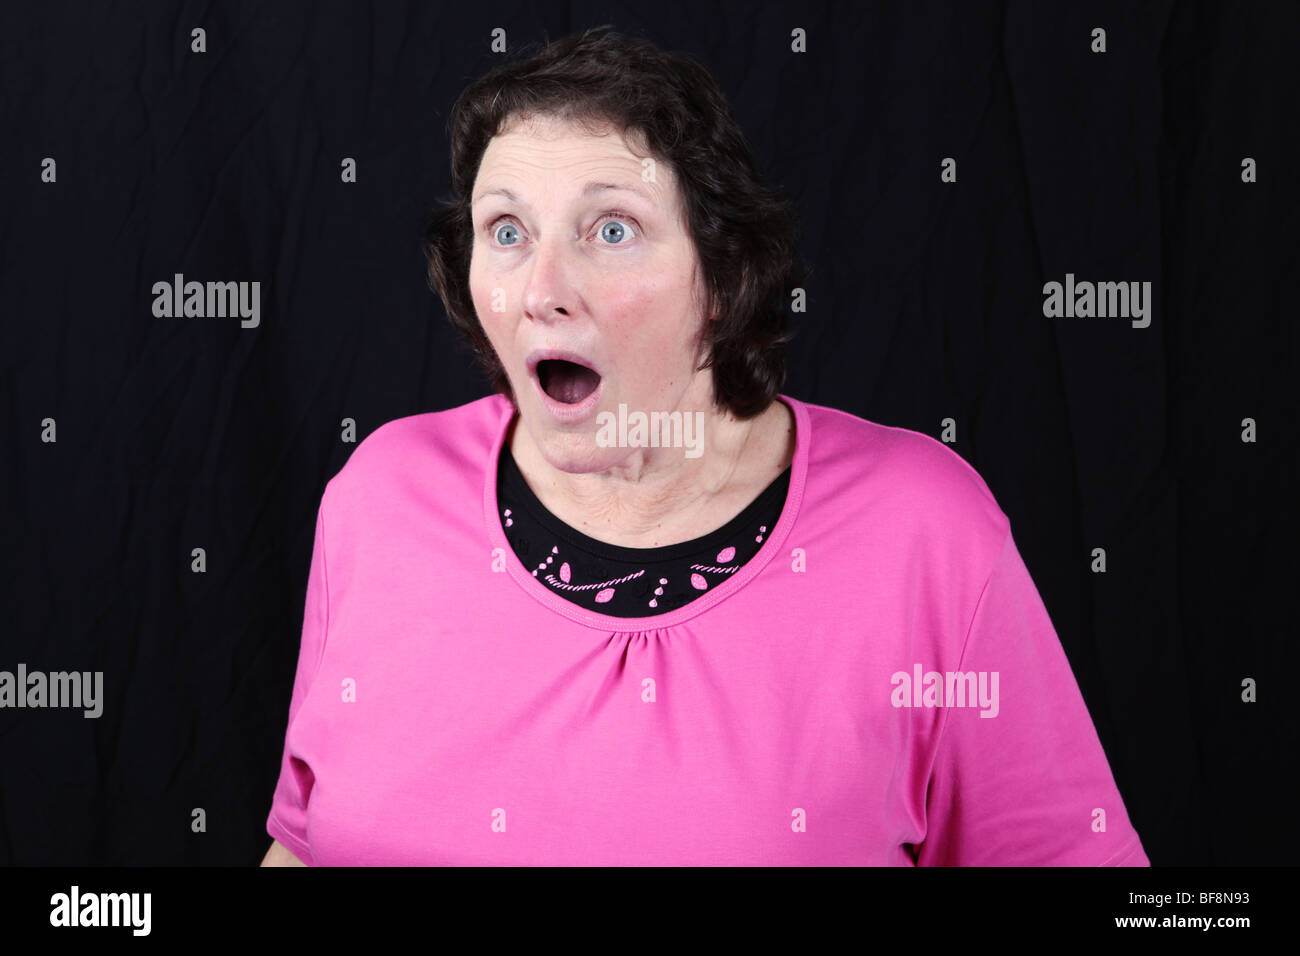 Late middle aged woman looking aghast surprised disbelieving shocked startled stunned hearing bad news - Stock Image